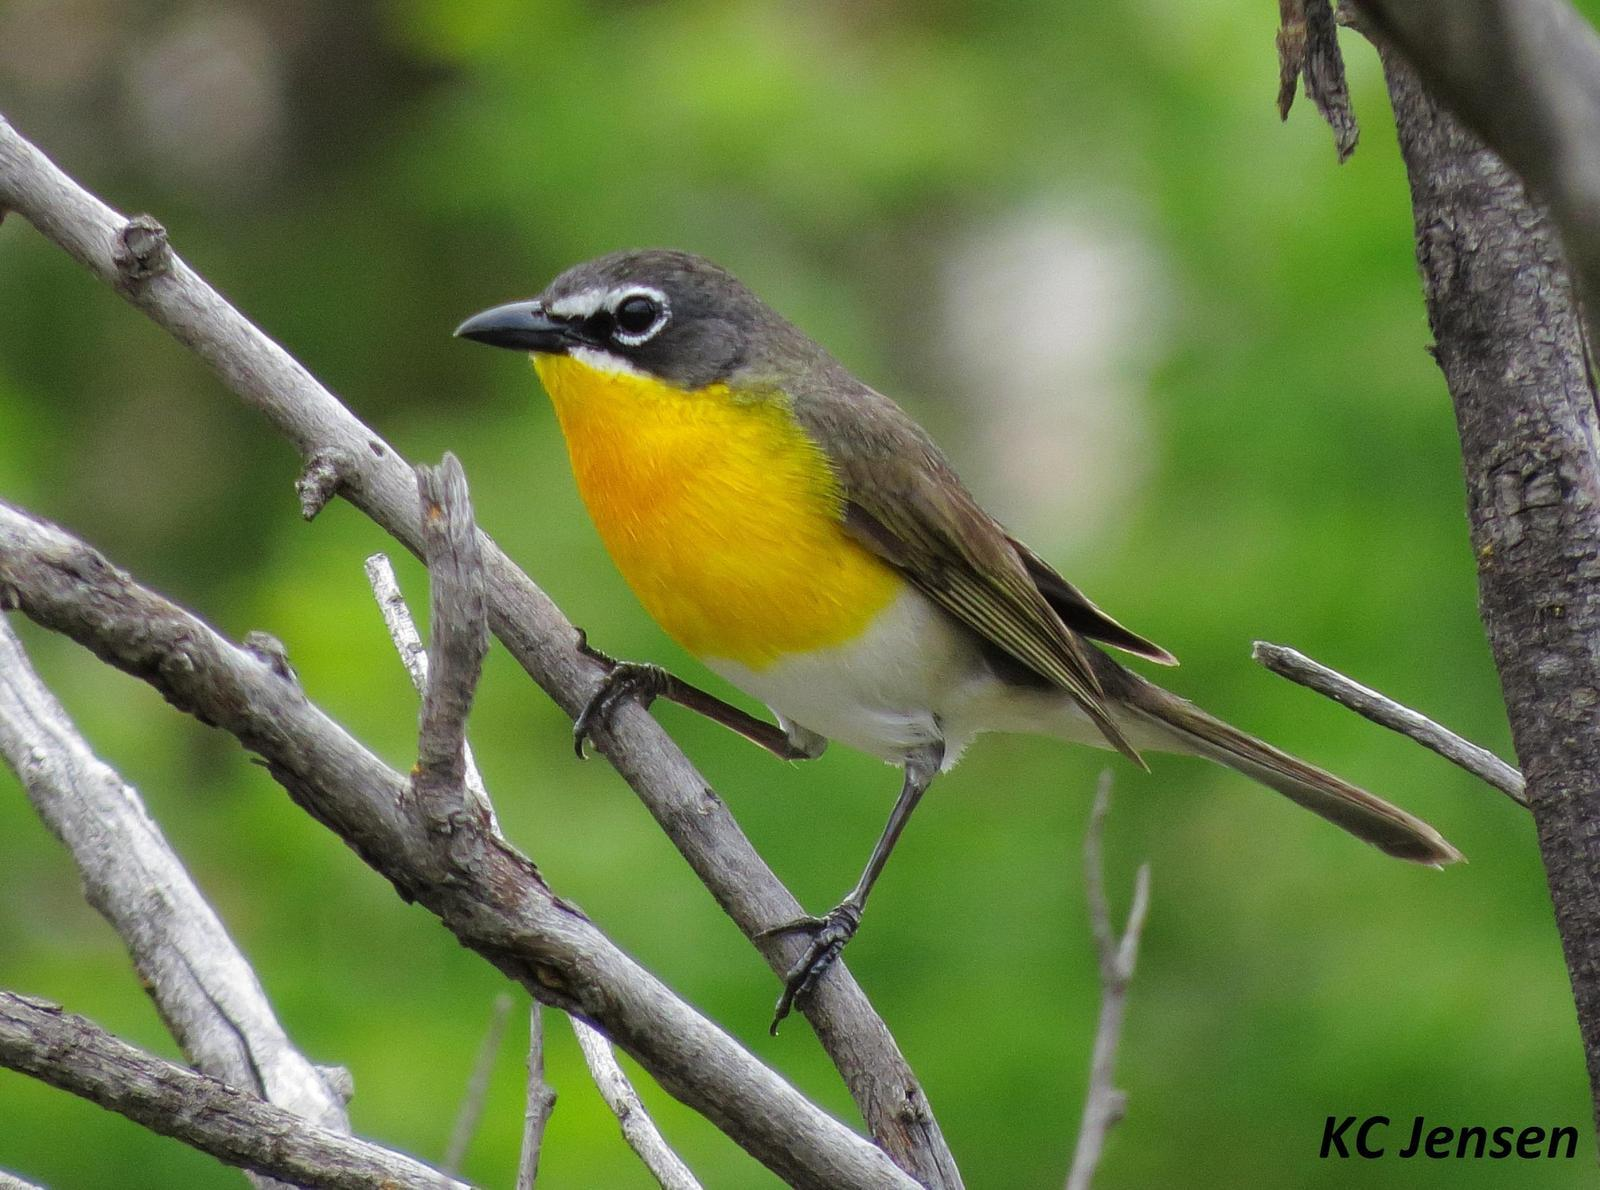 Yellow-breasted Chat Photo by Kent Jensen